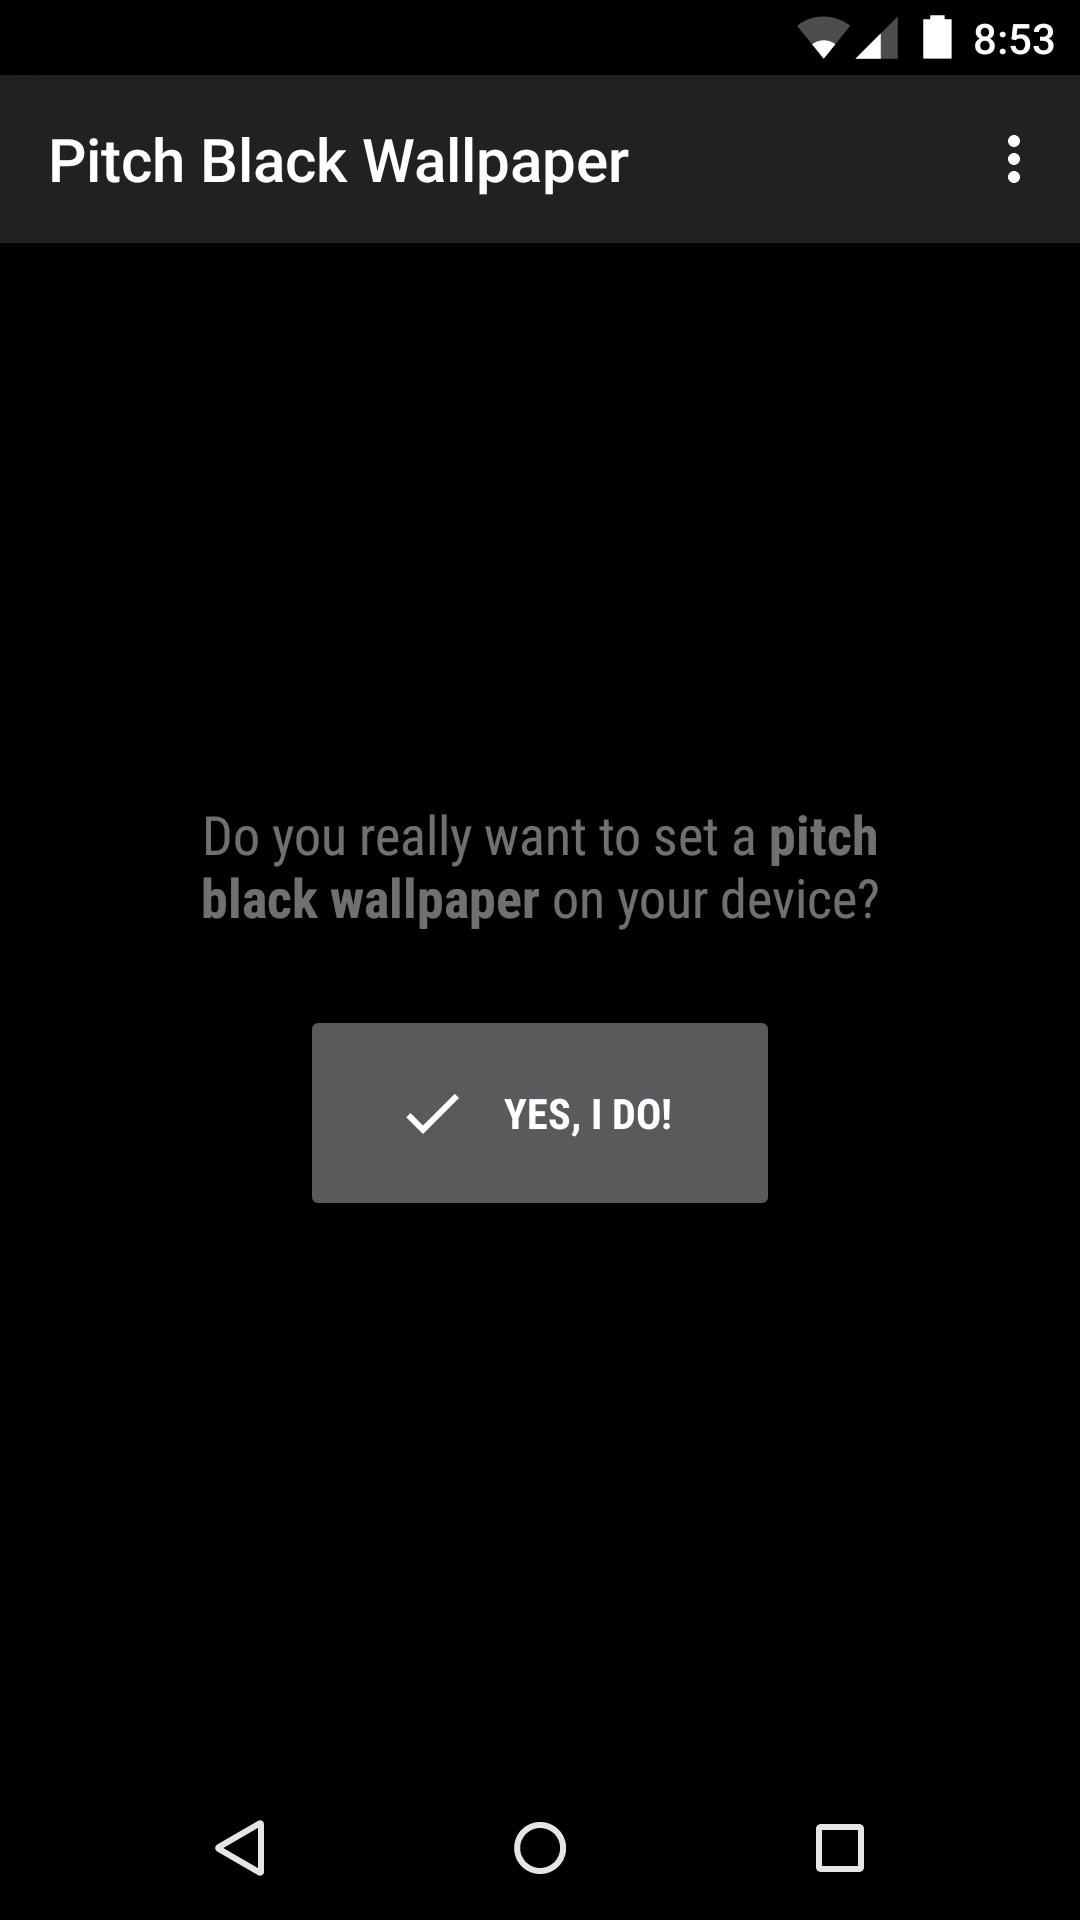 1080x1920 It's possible to update the information on Pitch Black Wallpaper or report  it as discontinued, duplicated or spam.